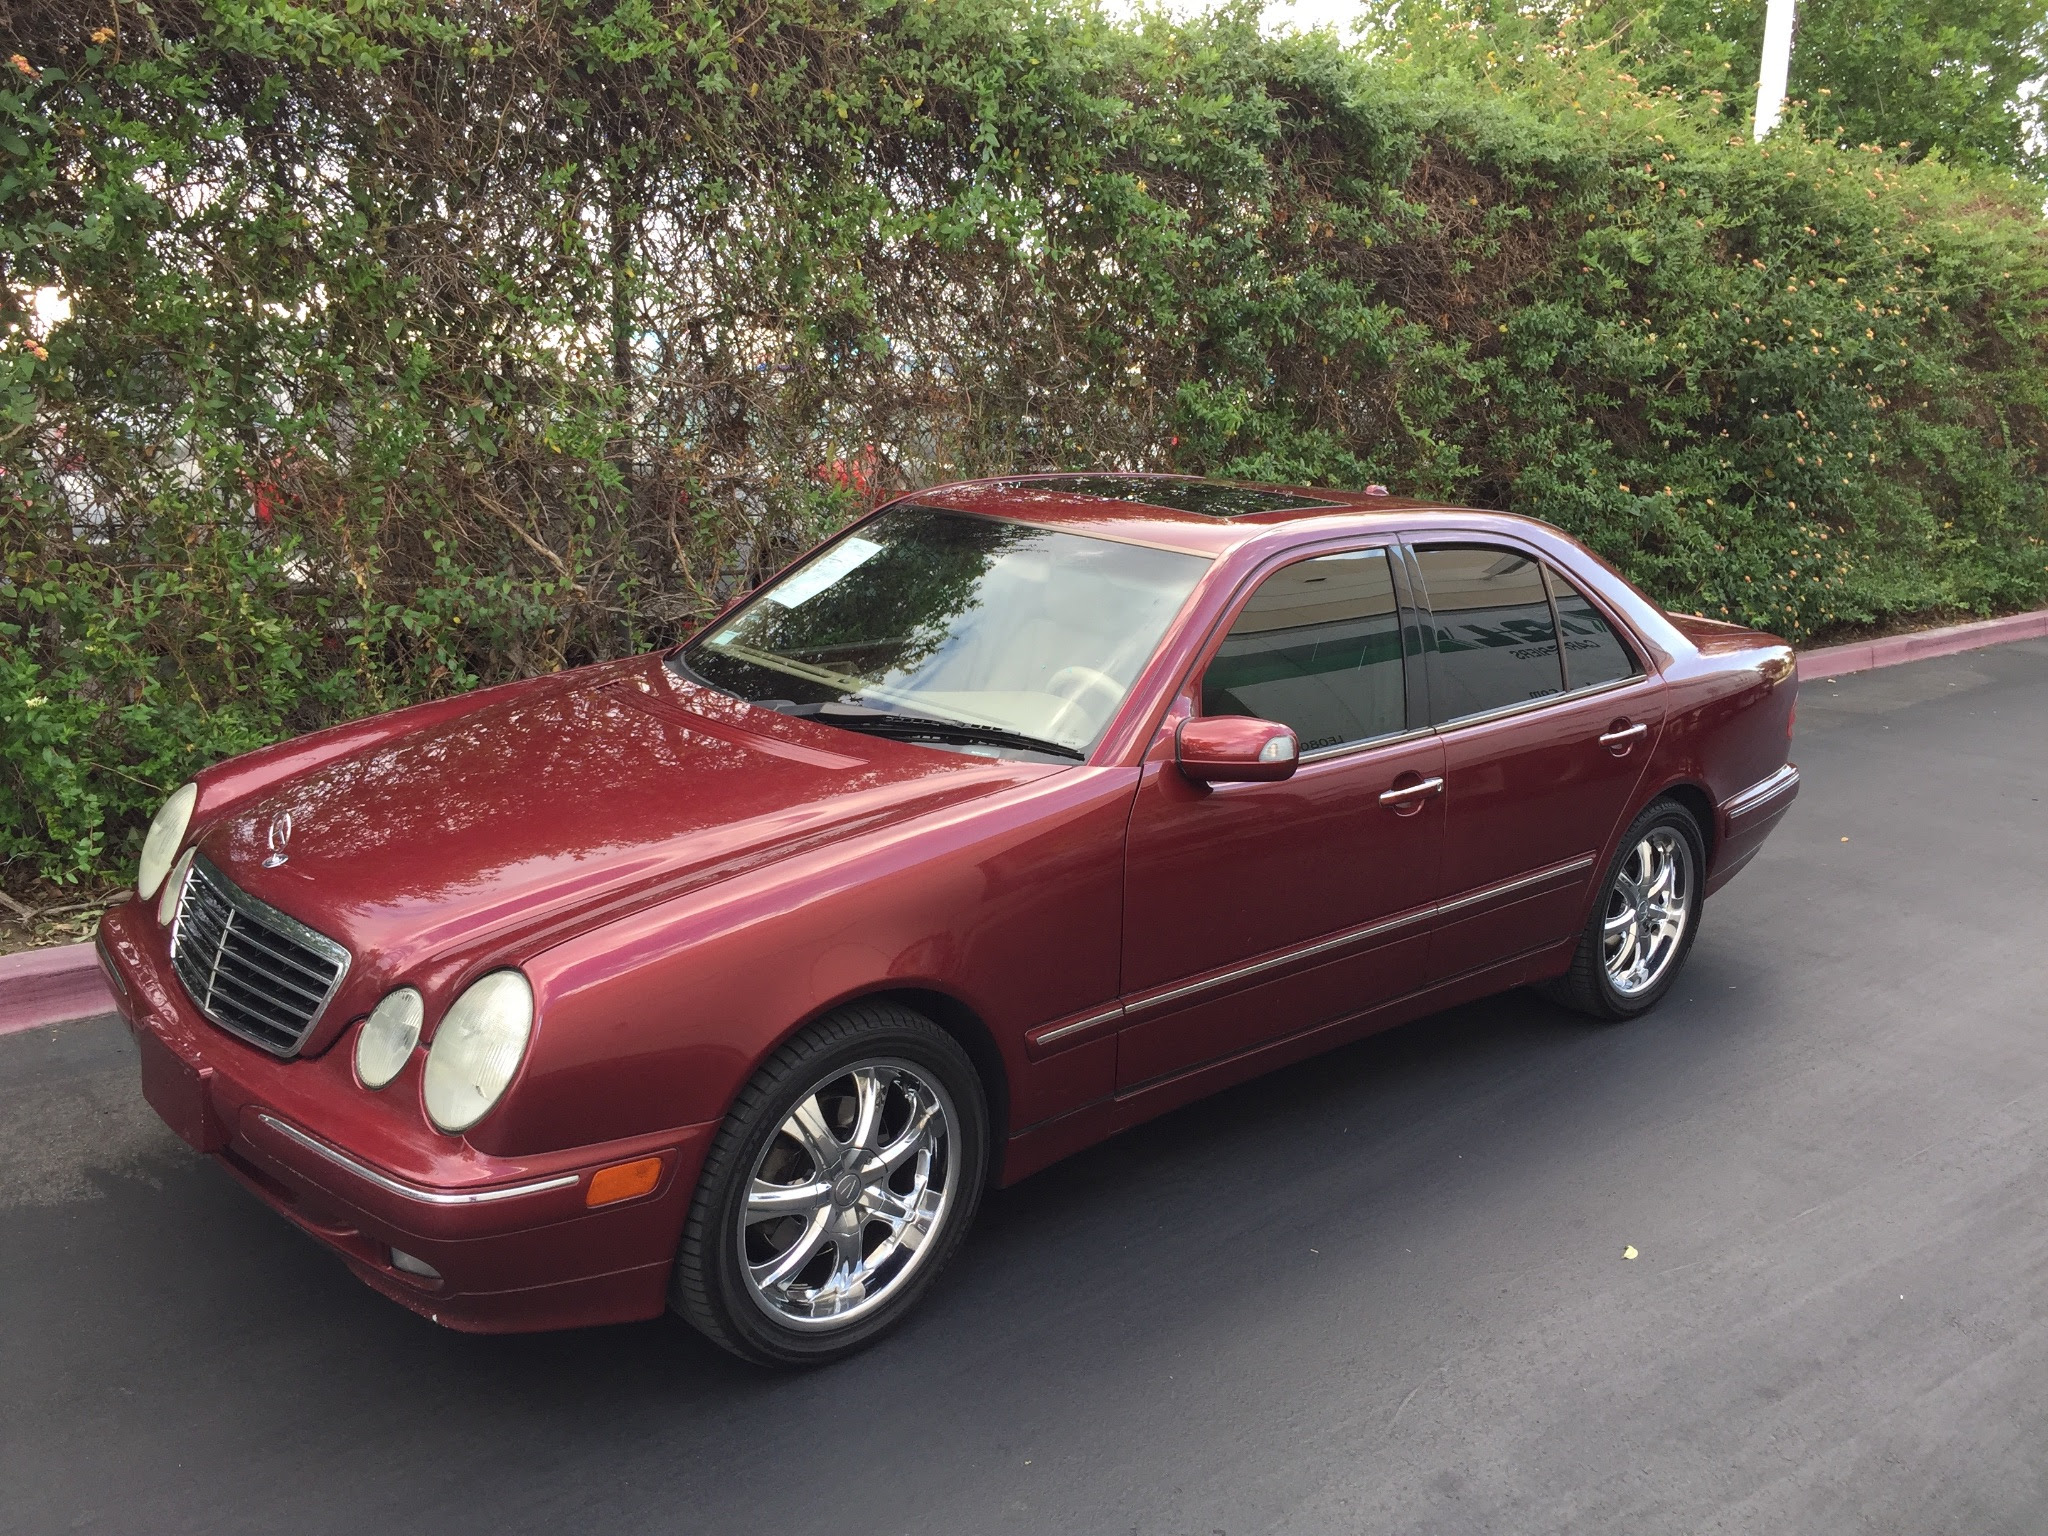 Used 2001 Mercedes-Benz E320 at City Cars Warehouse INC